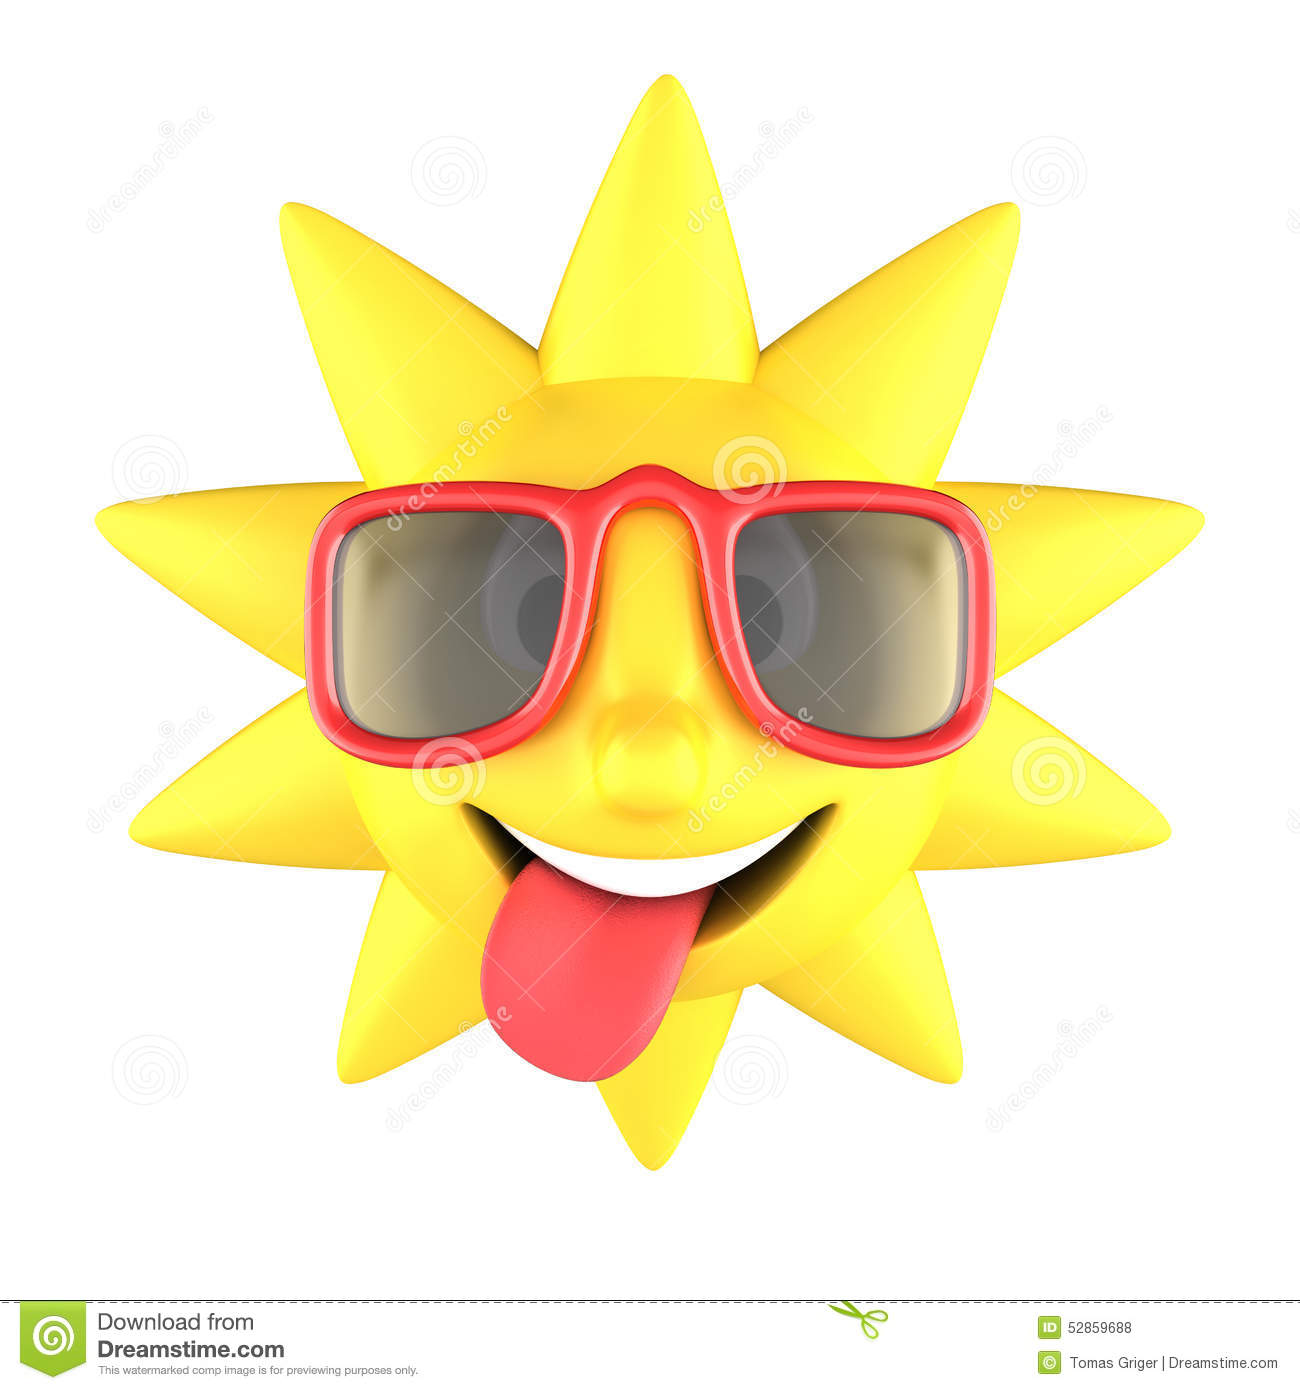 Smiling sun with sunglasses - Royalty Free Illustration Download Sun With Sunglasses Smiling